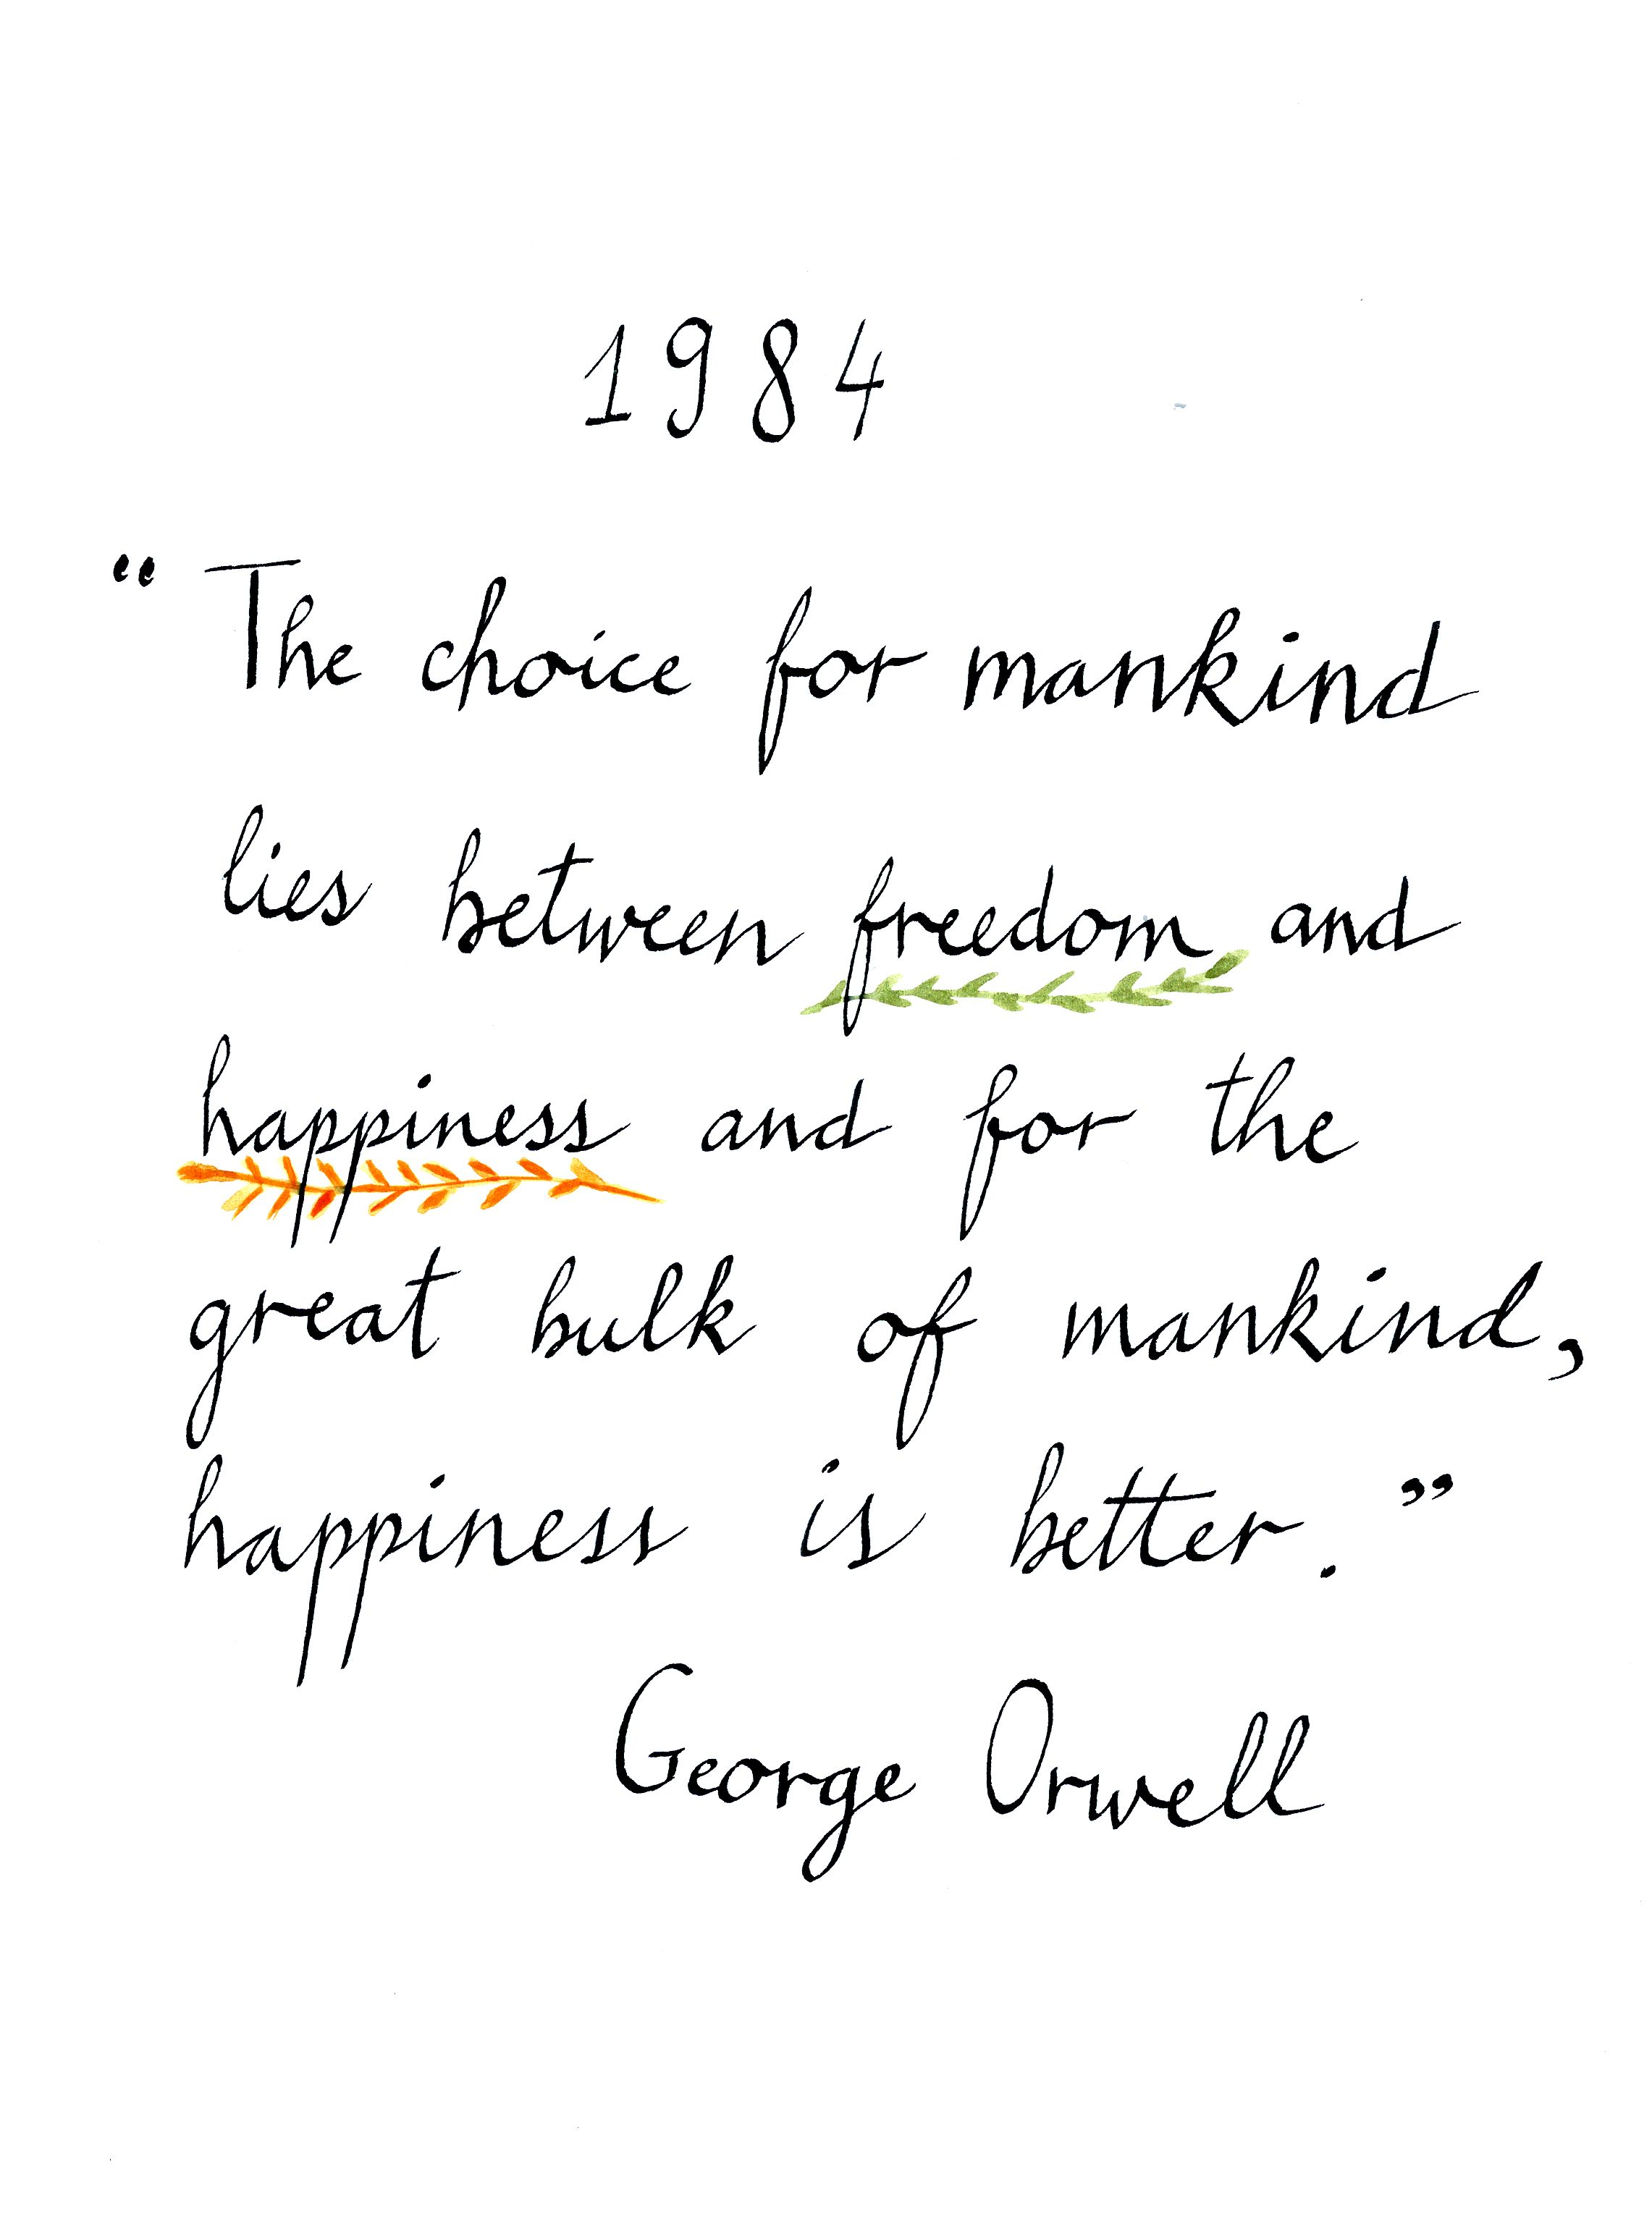 George Orwell 1984 Books Quotes Stuff To Know Pinterest